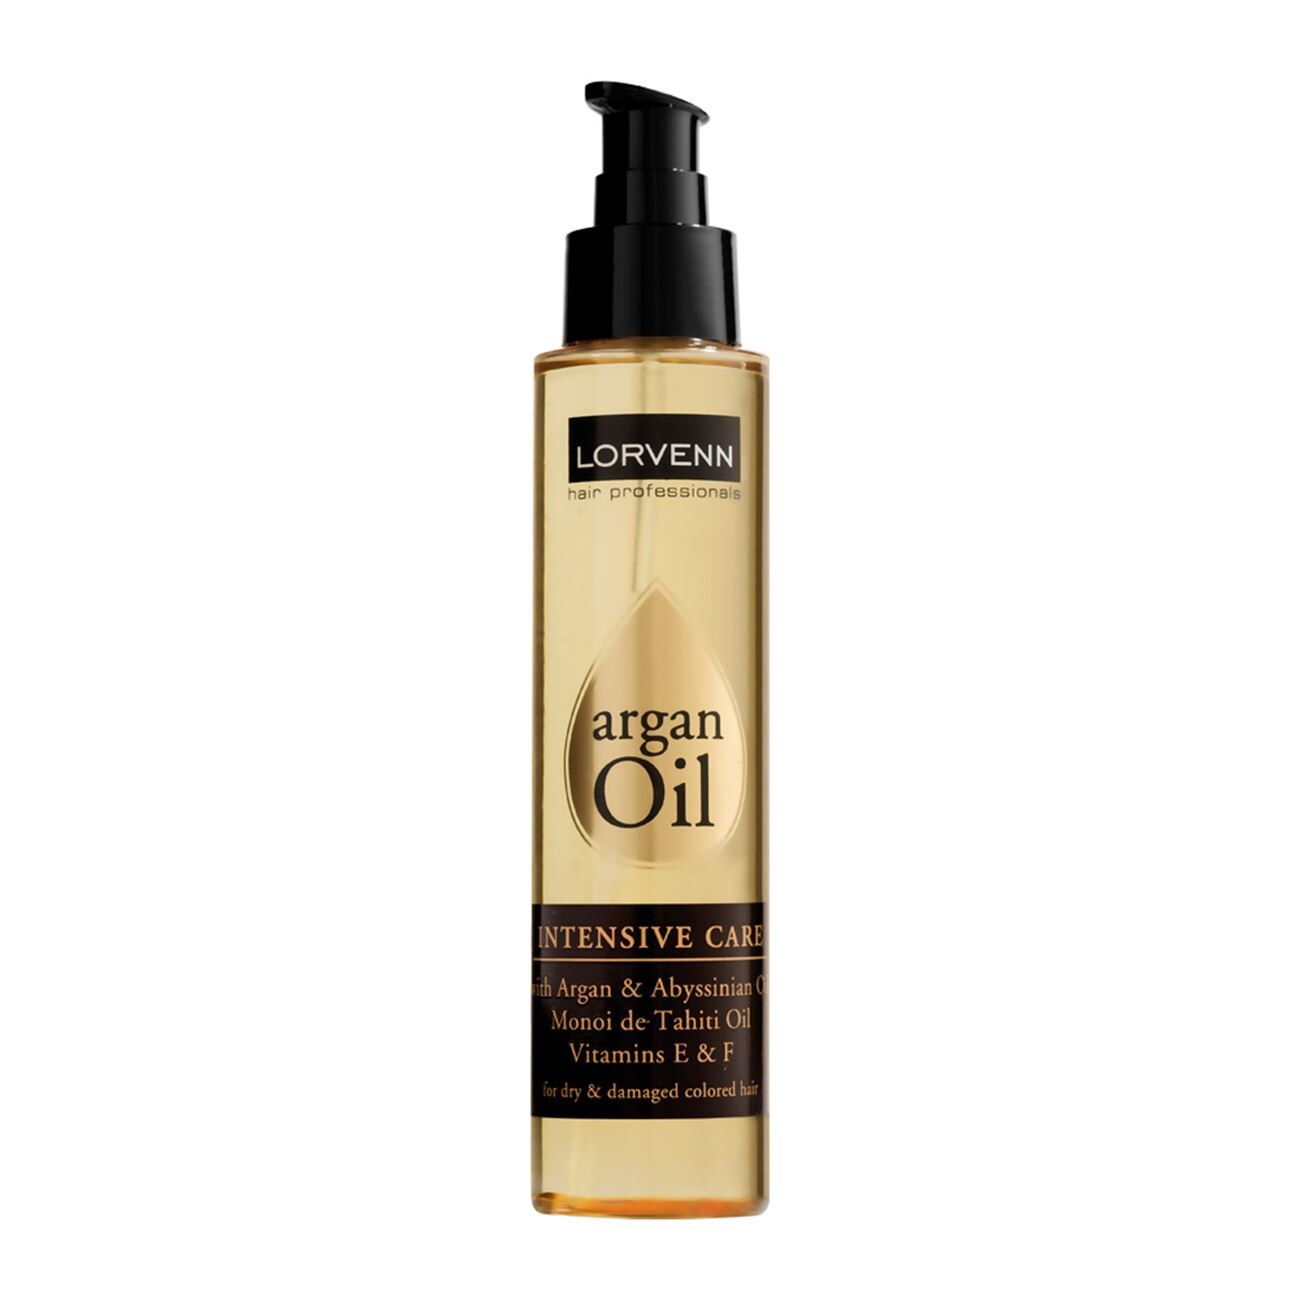 Argan Exotic Oil Intensive Care